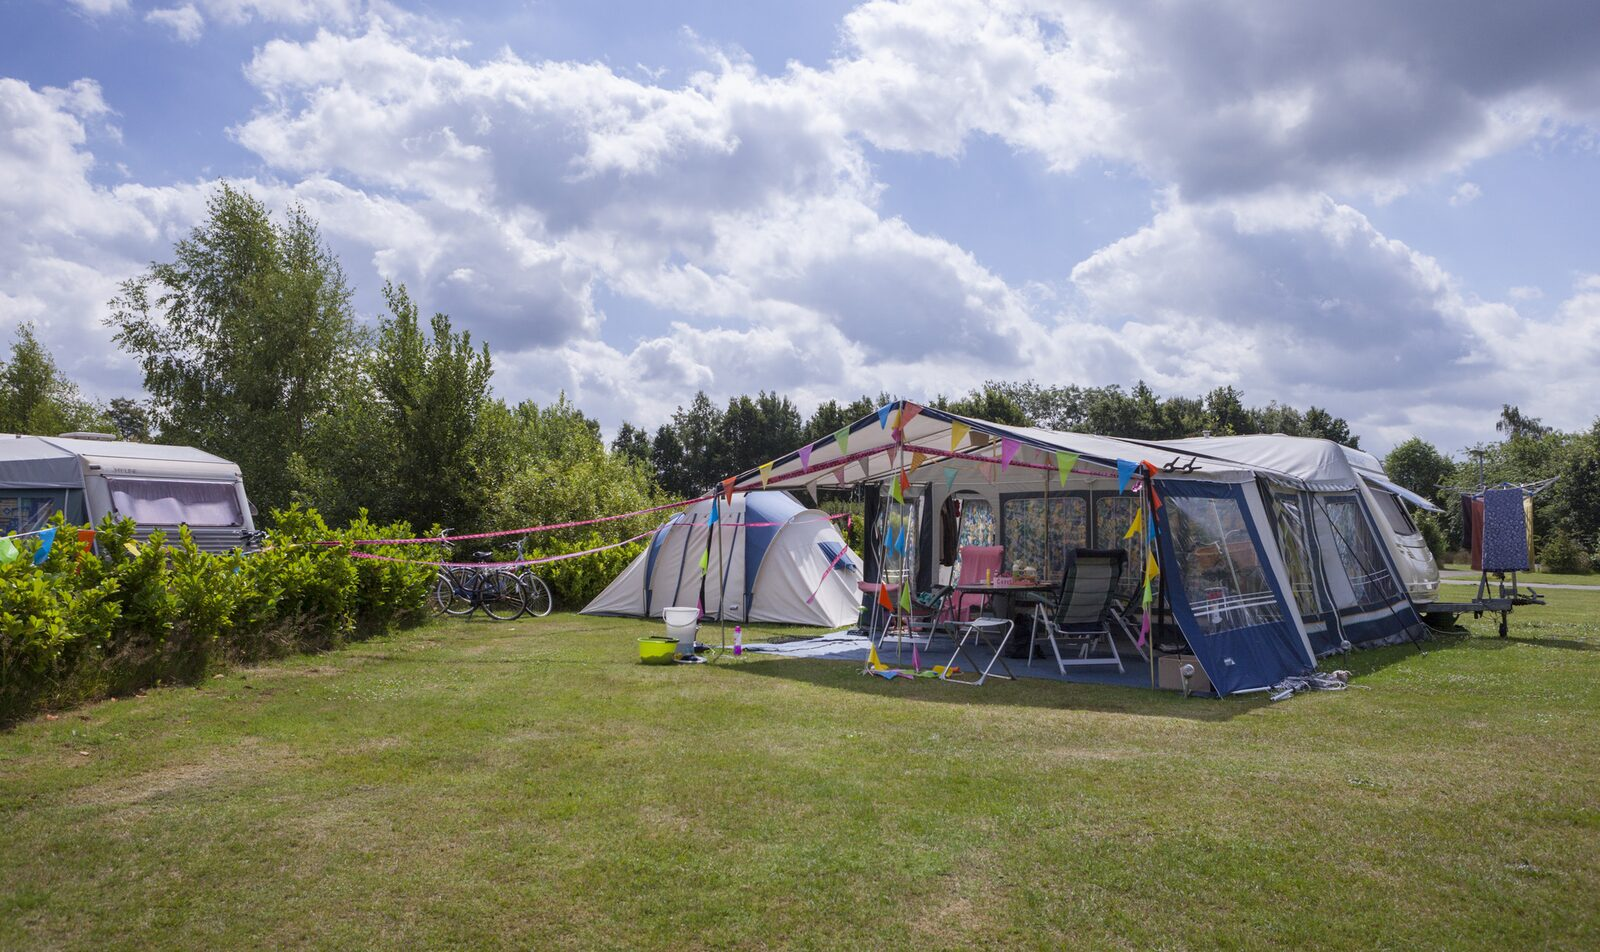 Camping with private sanitary facilities